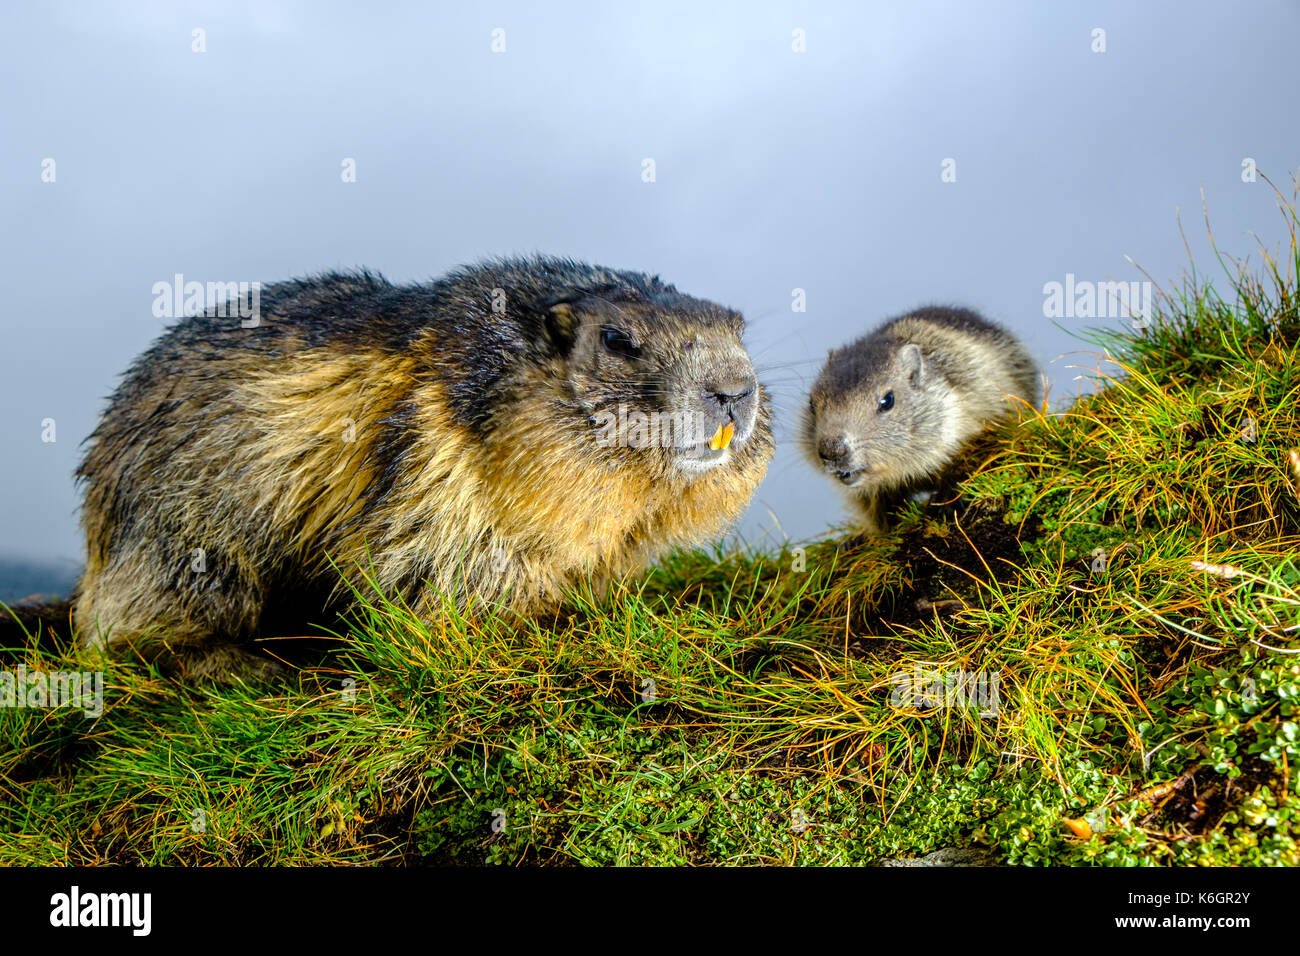 An adult and a baby Alpine marmot (Marmota marmota) are sitting on a mountain slope at Kaiser-Franz-Josefs-Höhe - Stock Image